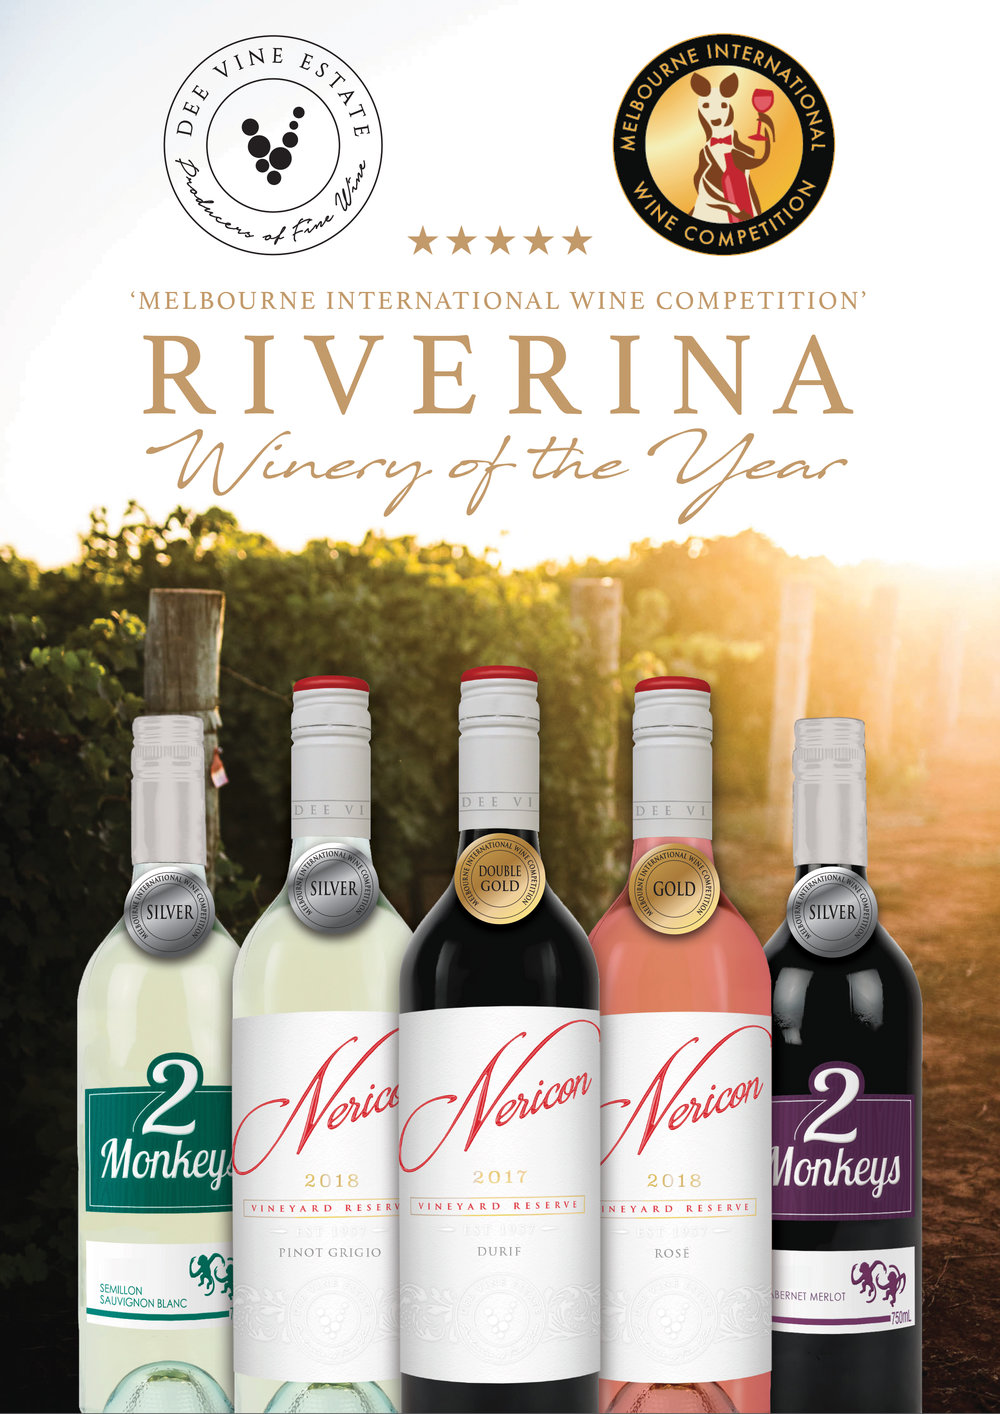 riverina winery of the year.jpg